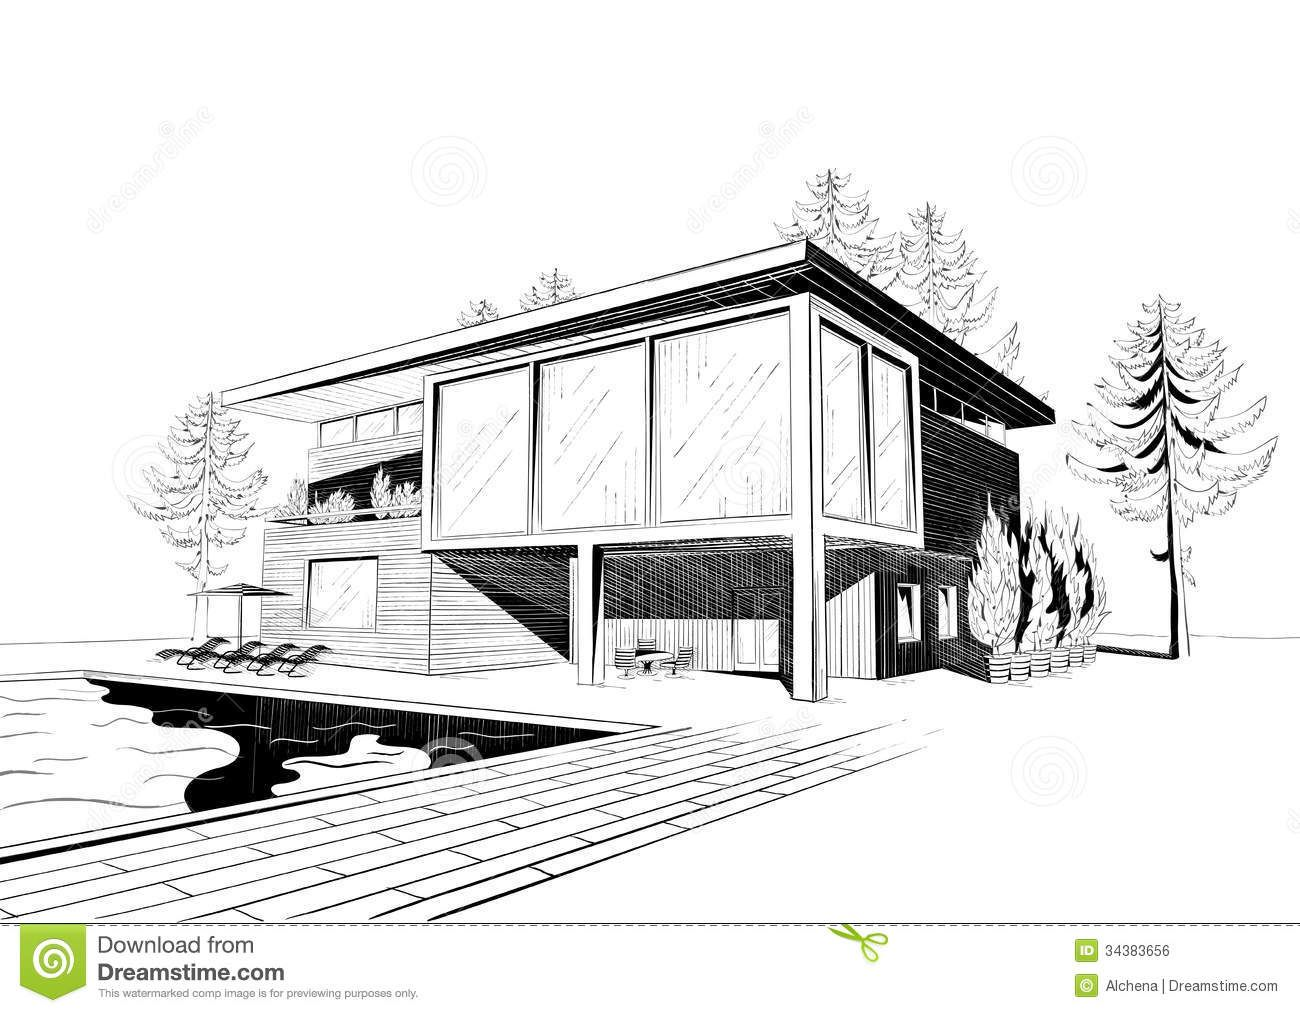 Excellent Modern Home Architecture Sketches On Design With Vector Black And White Sketch Of